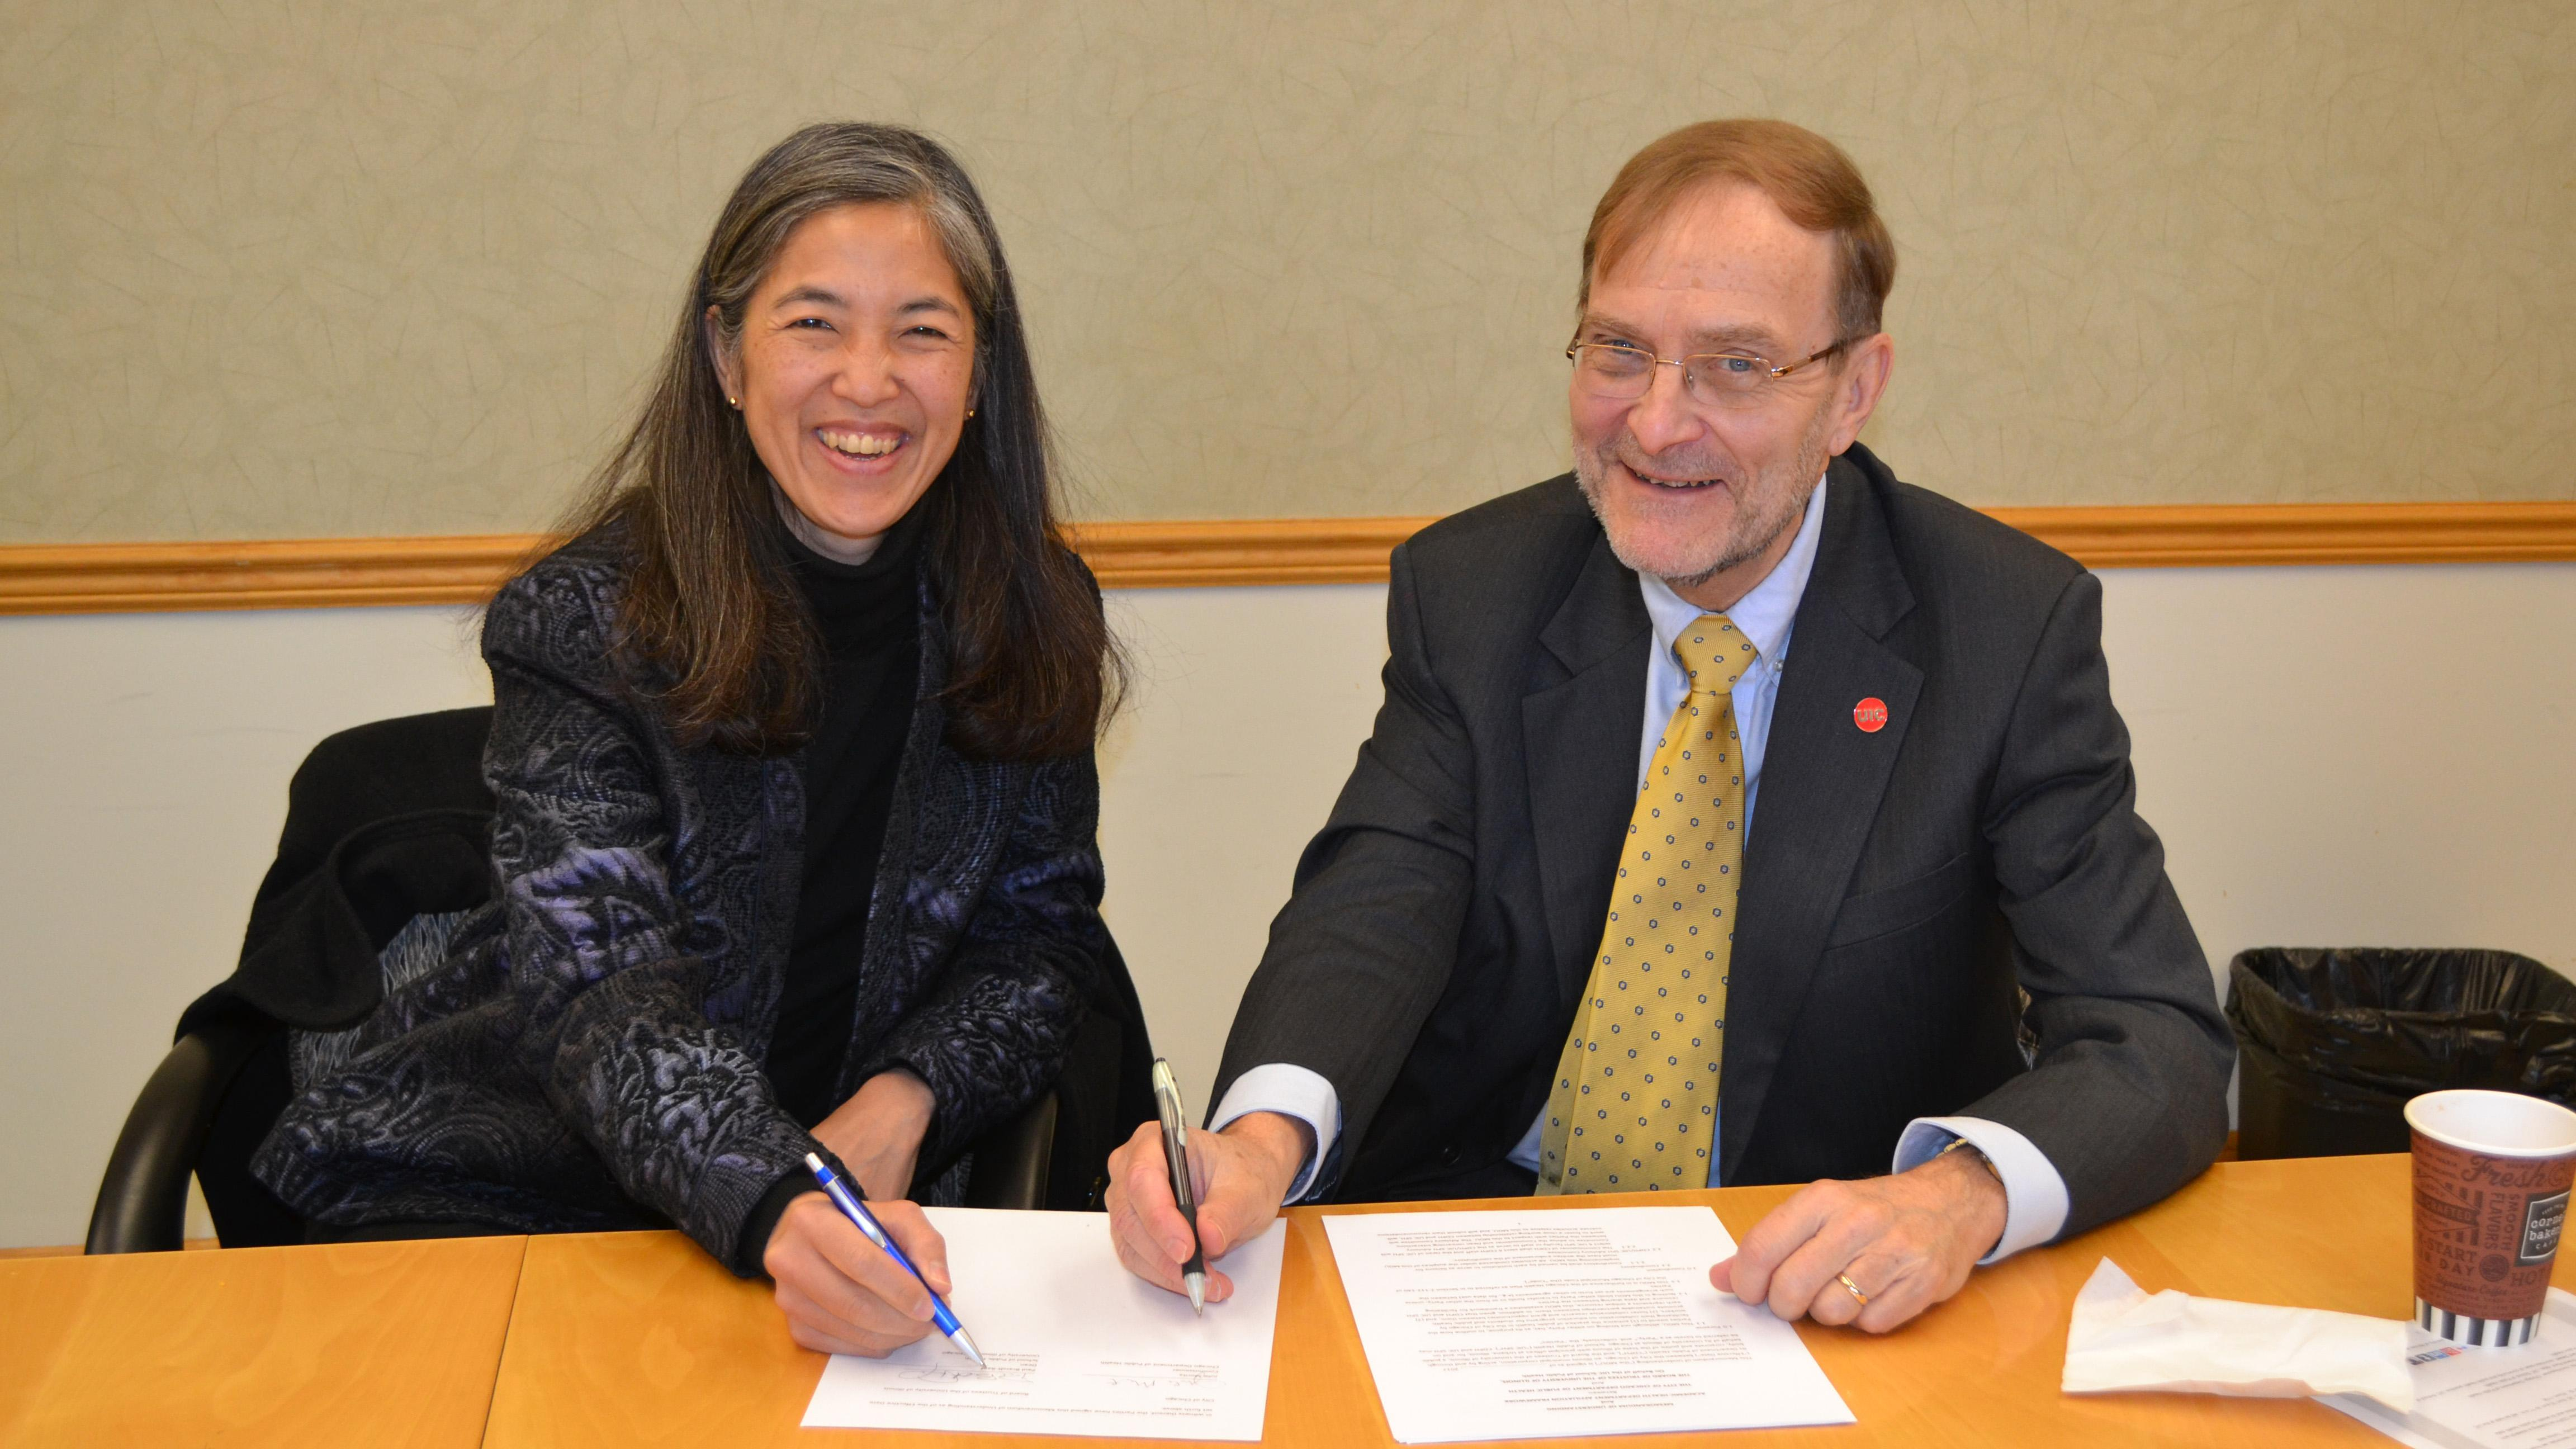 Chicago Department of Public Health Commissioner Dr. Julie Morita and UIC School of Public Health Dean Dr. Paul Brandt-Rauf sign an agreement Wednesday morning formalizing a partnership. (UIC School of Public Health)